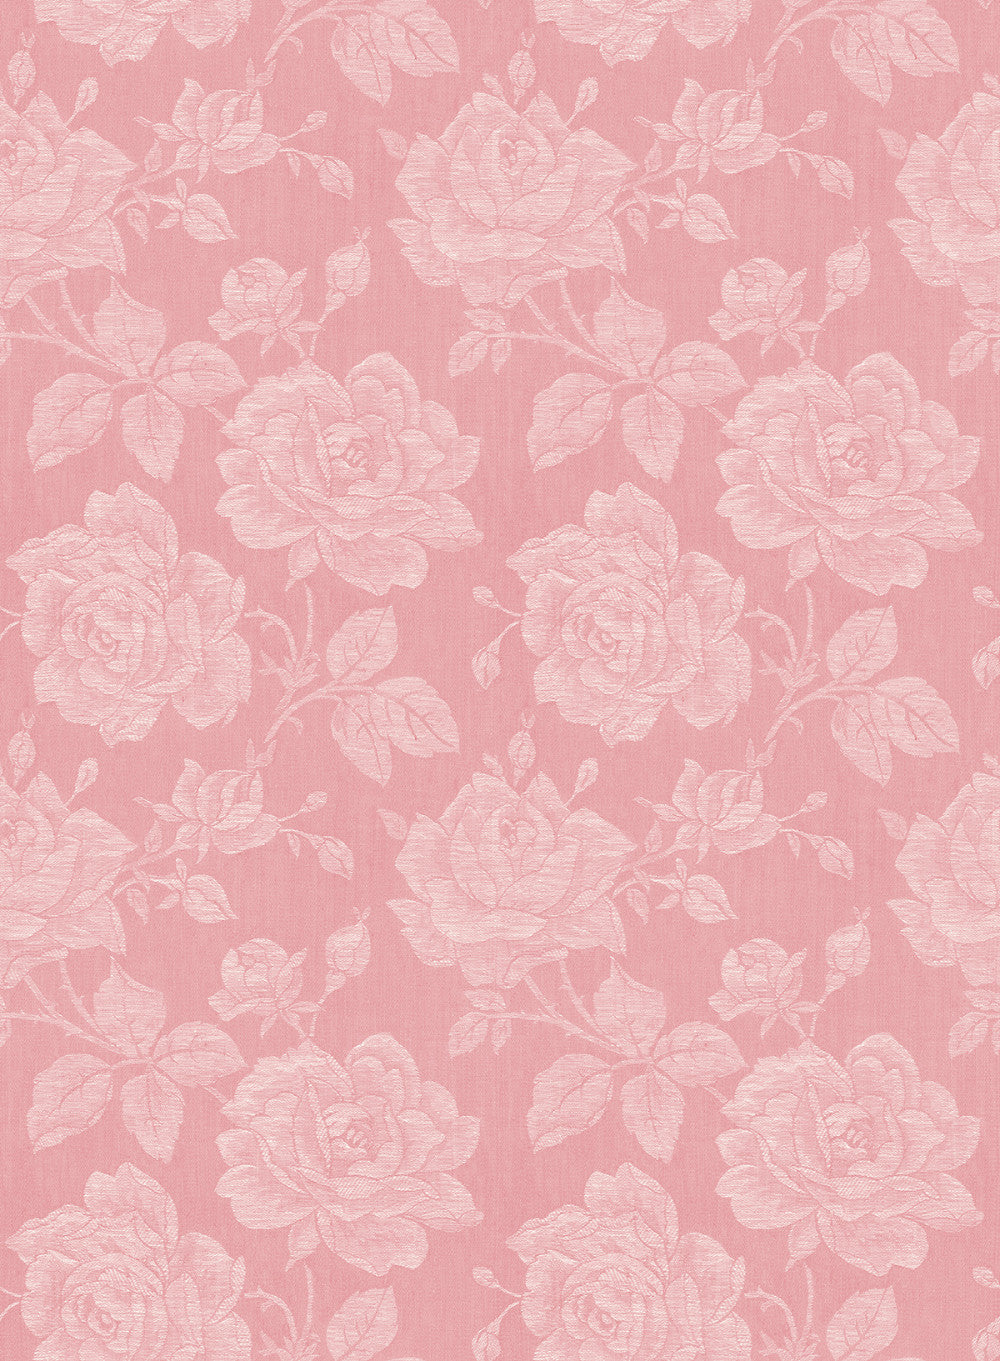 Garden Rose Wallpaper In Coral From The Spring Garden Collection